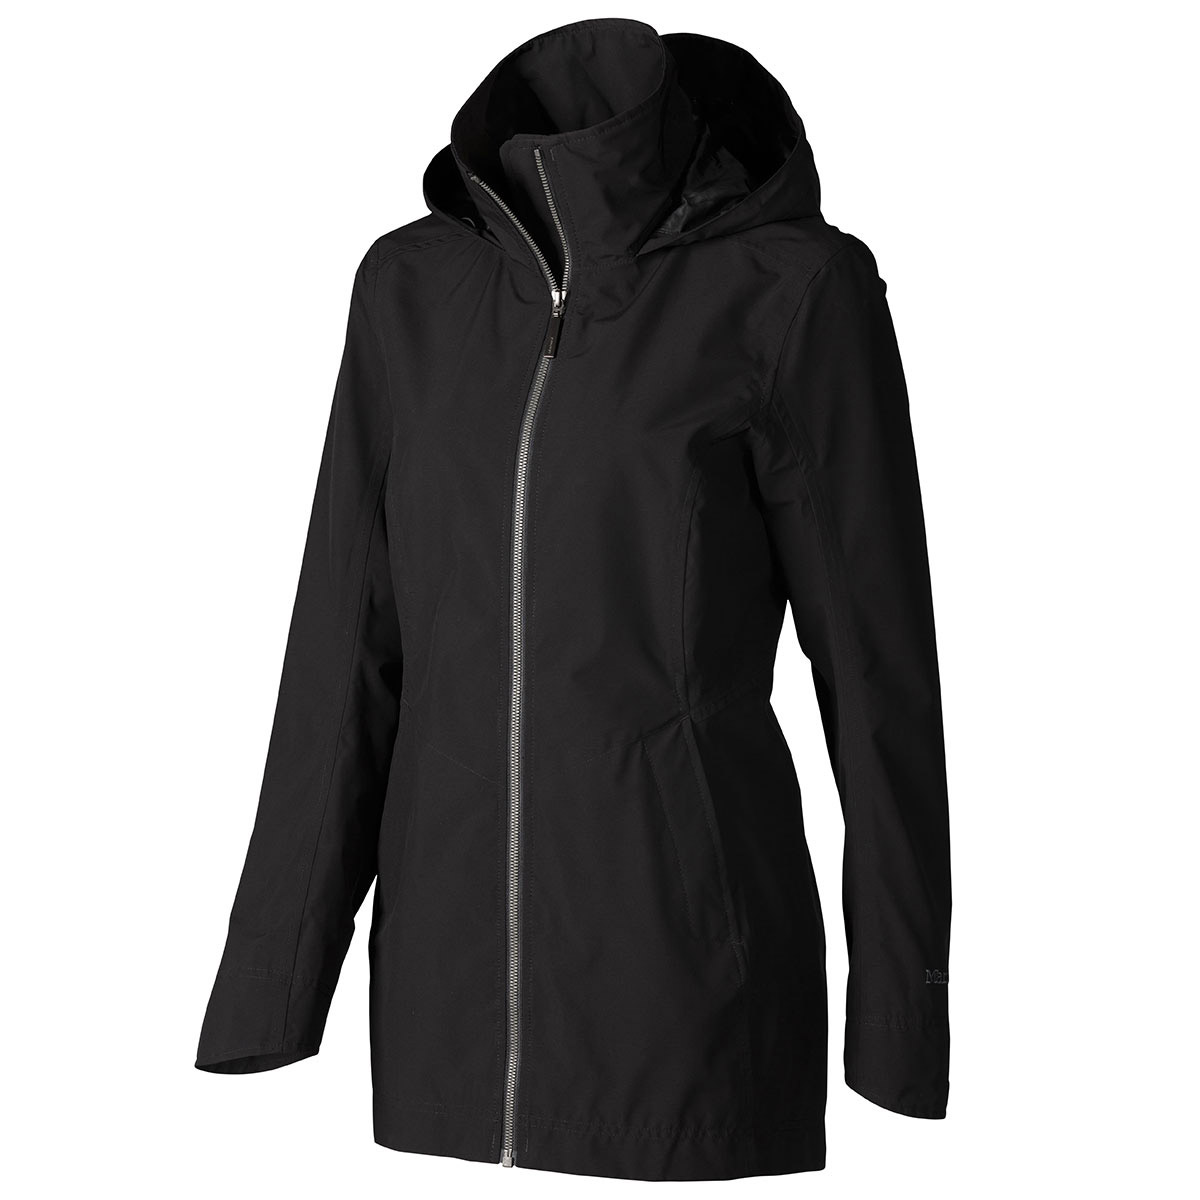 Marmot Women's Lea Jacket - Black, L